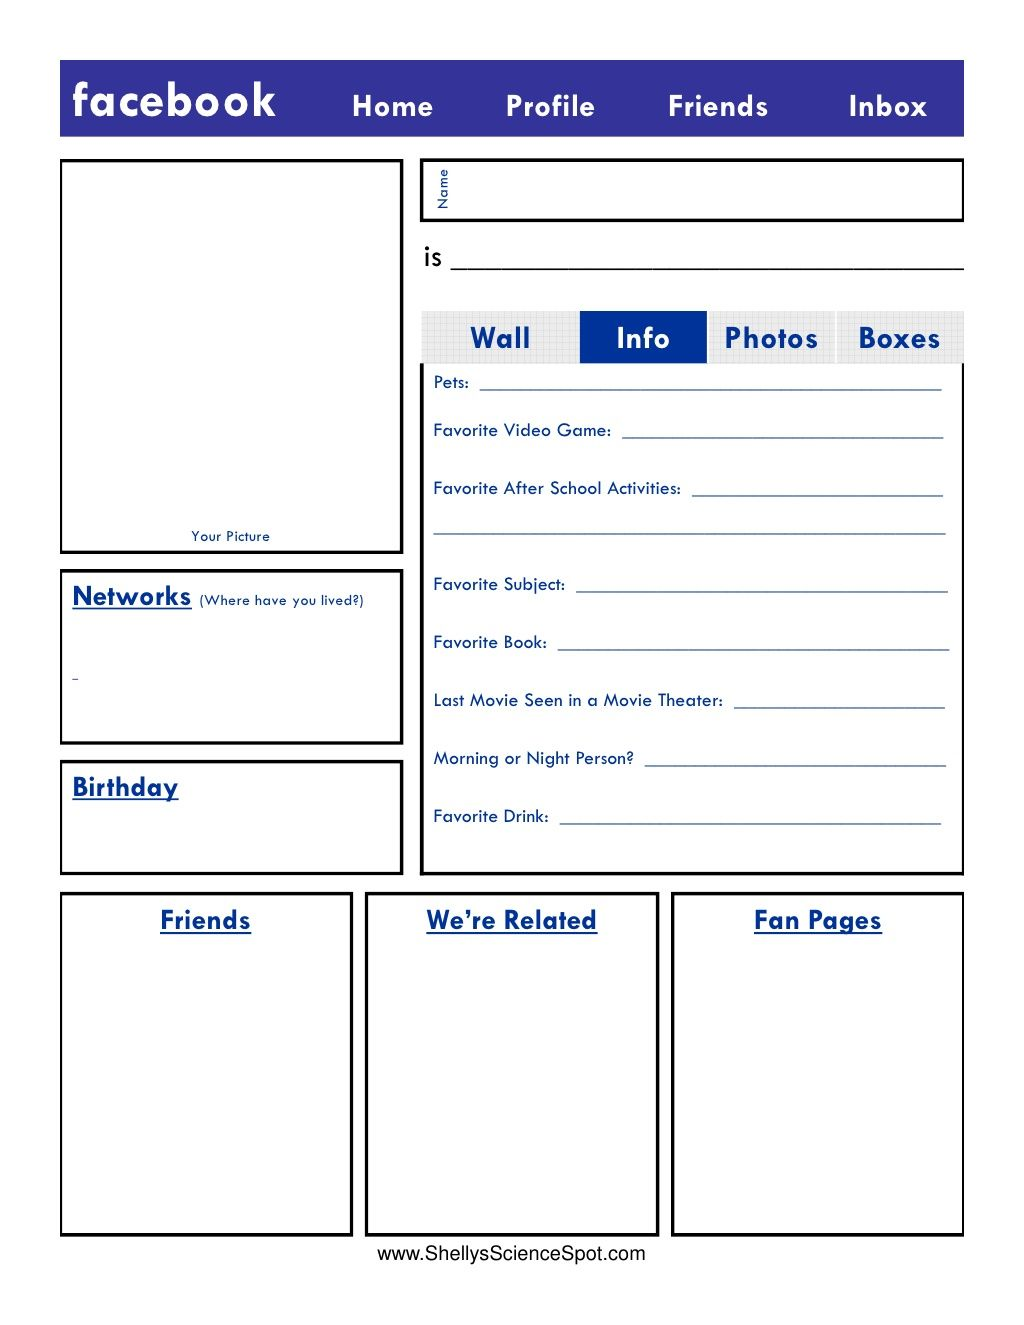 Blank Facebook Page By Mrs Henley Via Slideshare